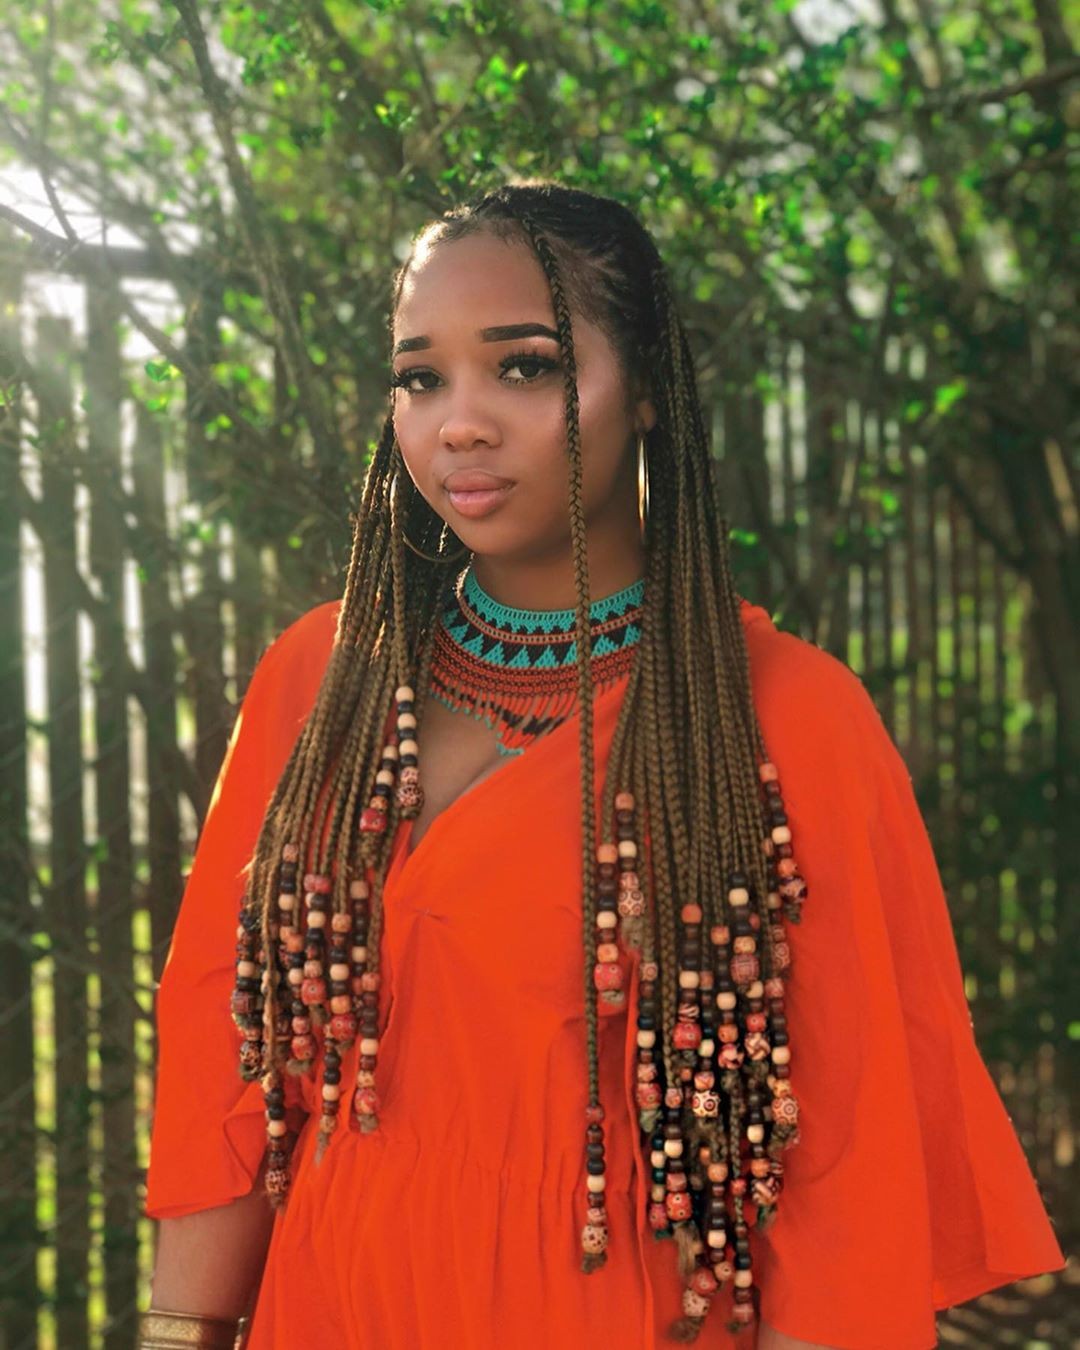 8 Bold & Beautiful Braid Styles to Steal from Nneunfiltered's Nneoma Okorie ASAP